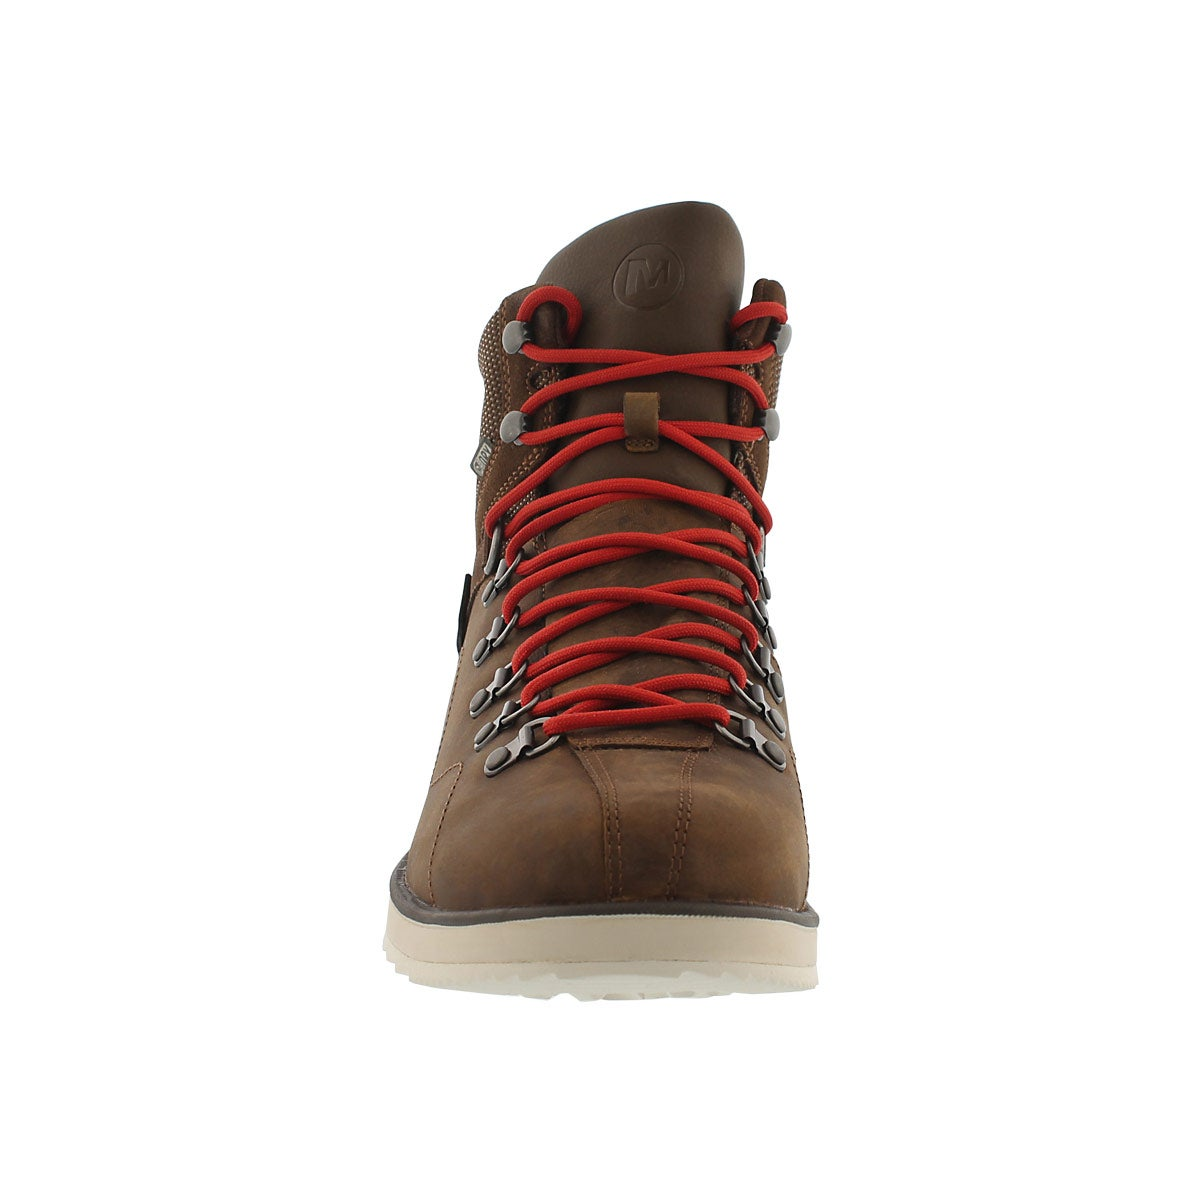 Mns Epiction Polar brn wtpf winter boot